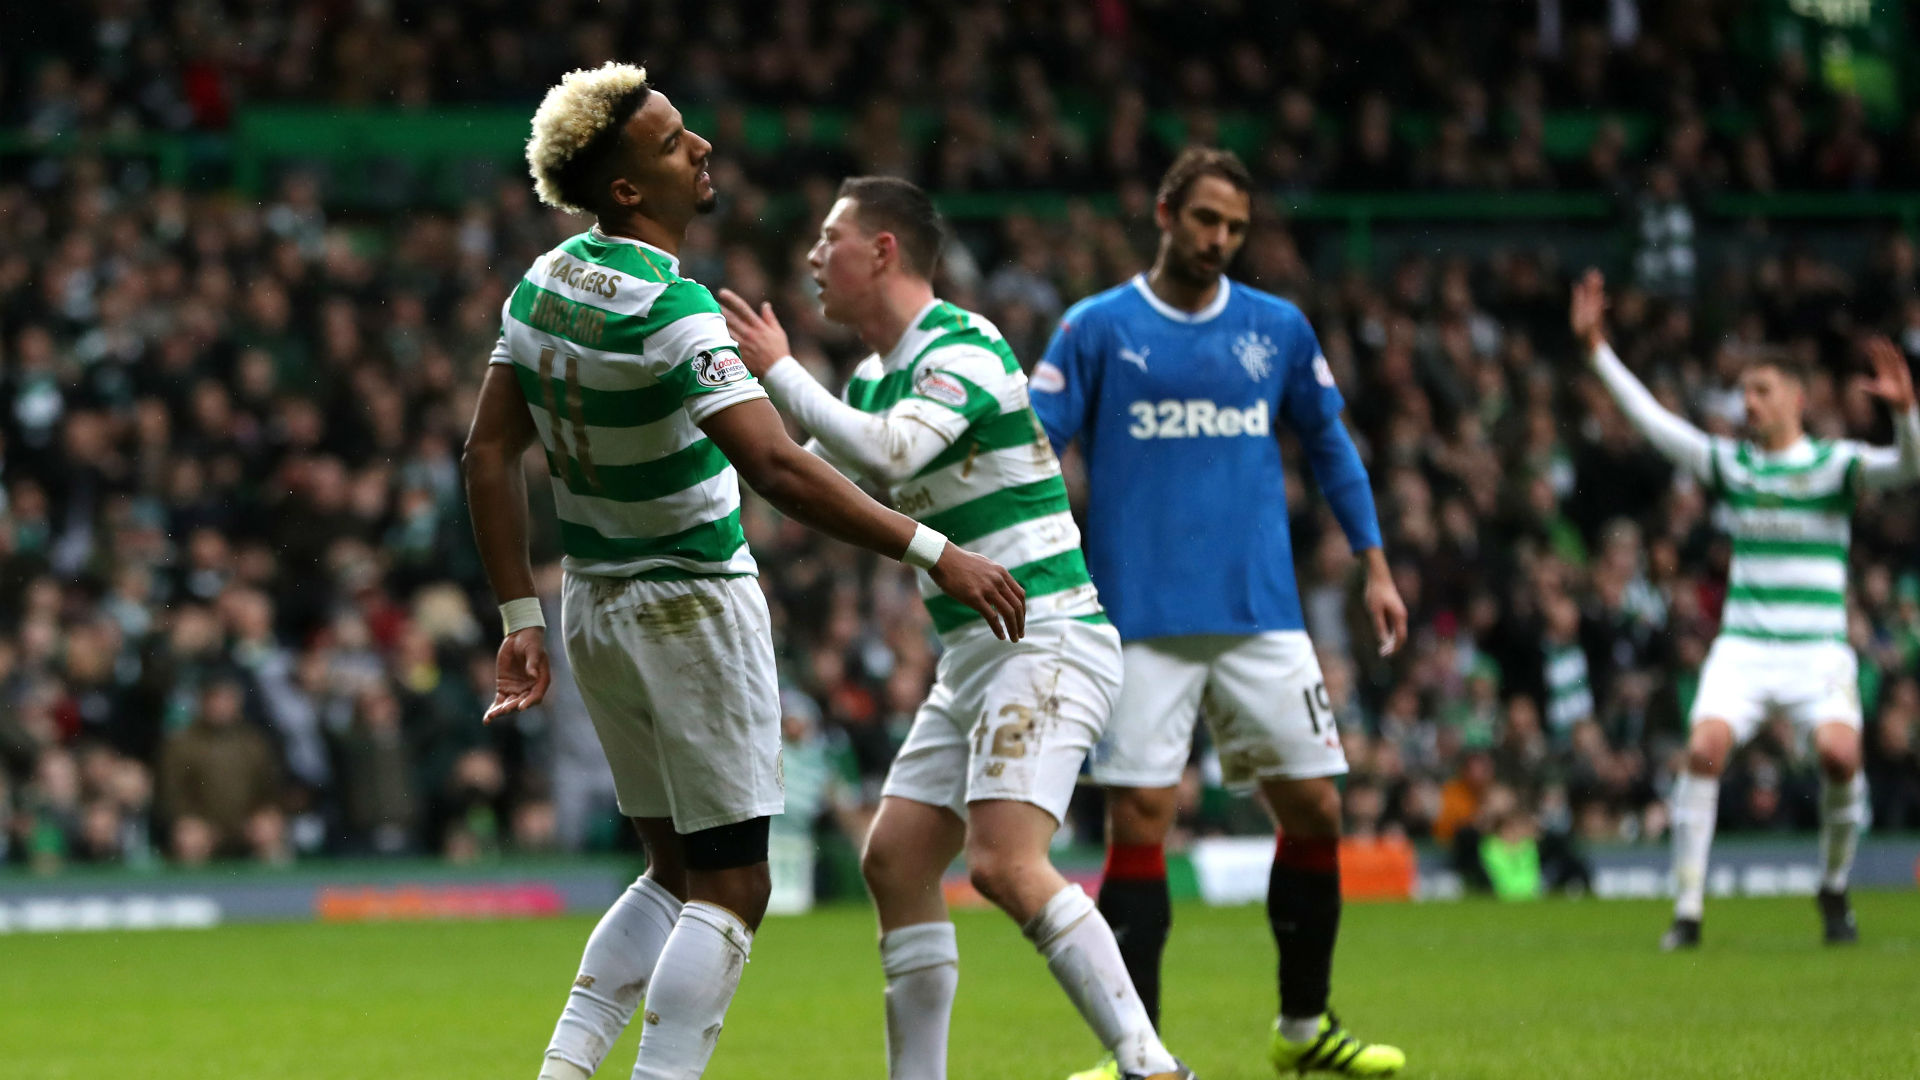 Celtic v Rangers: Brendan Rodgers believes dominance will sow doubts in rivals